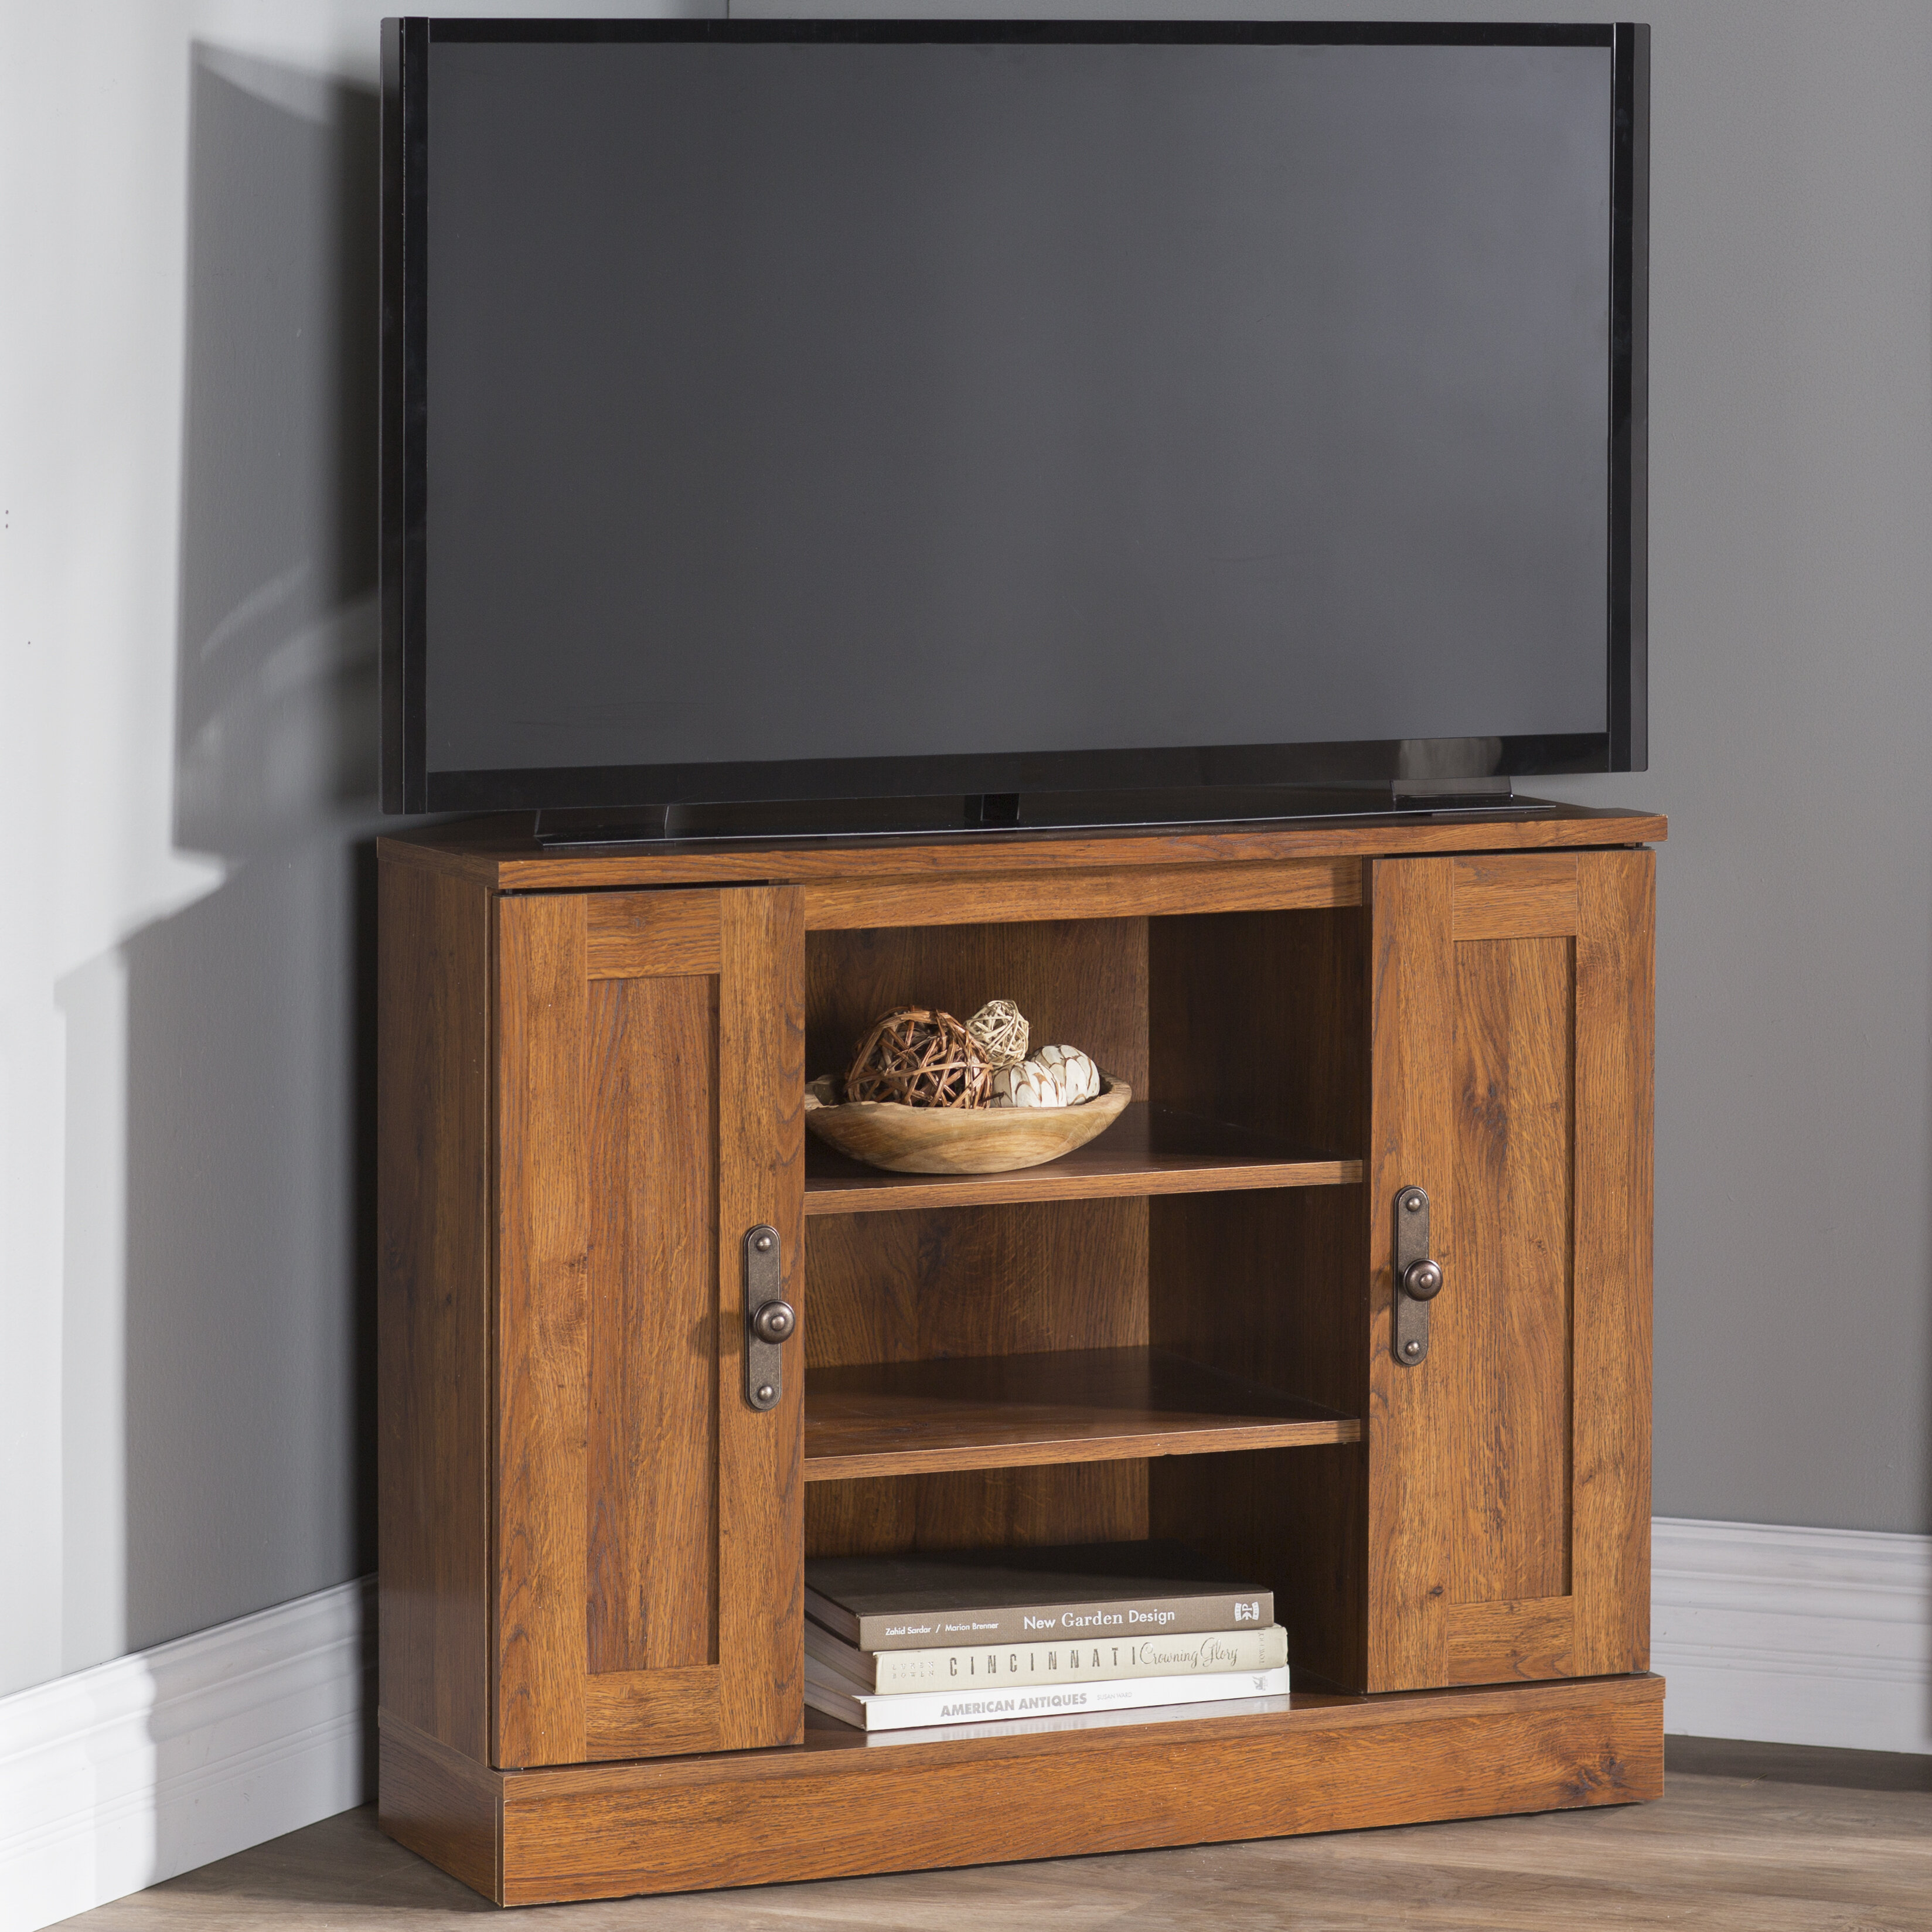 Alcott Hill Englewood Corner Tv Stand For Tvs Up To 37 Reviews Wayfair